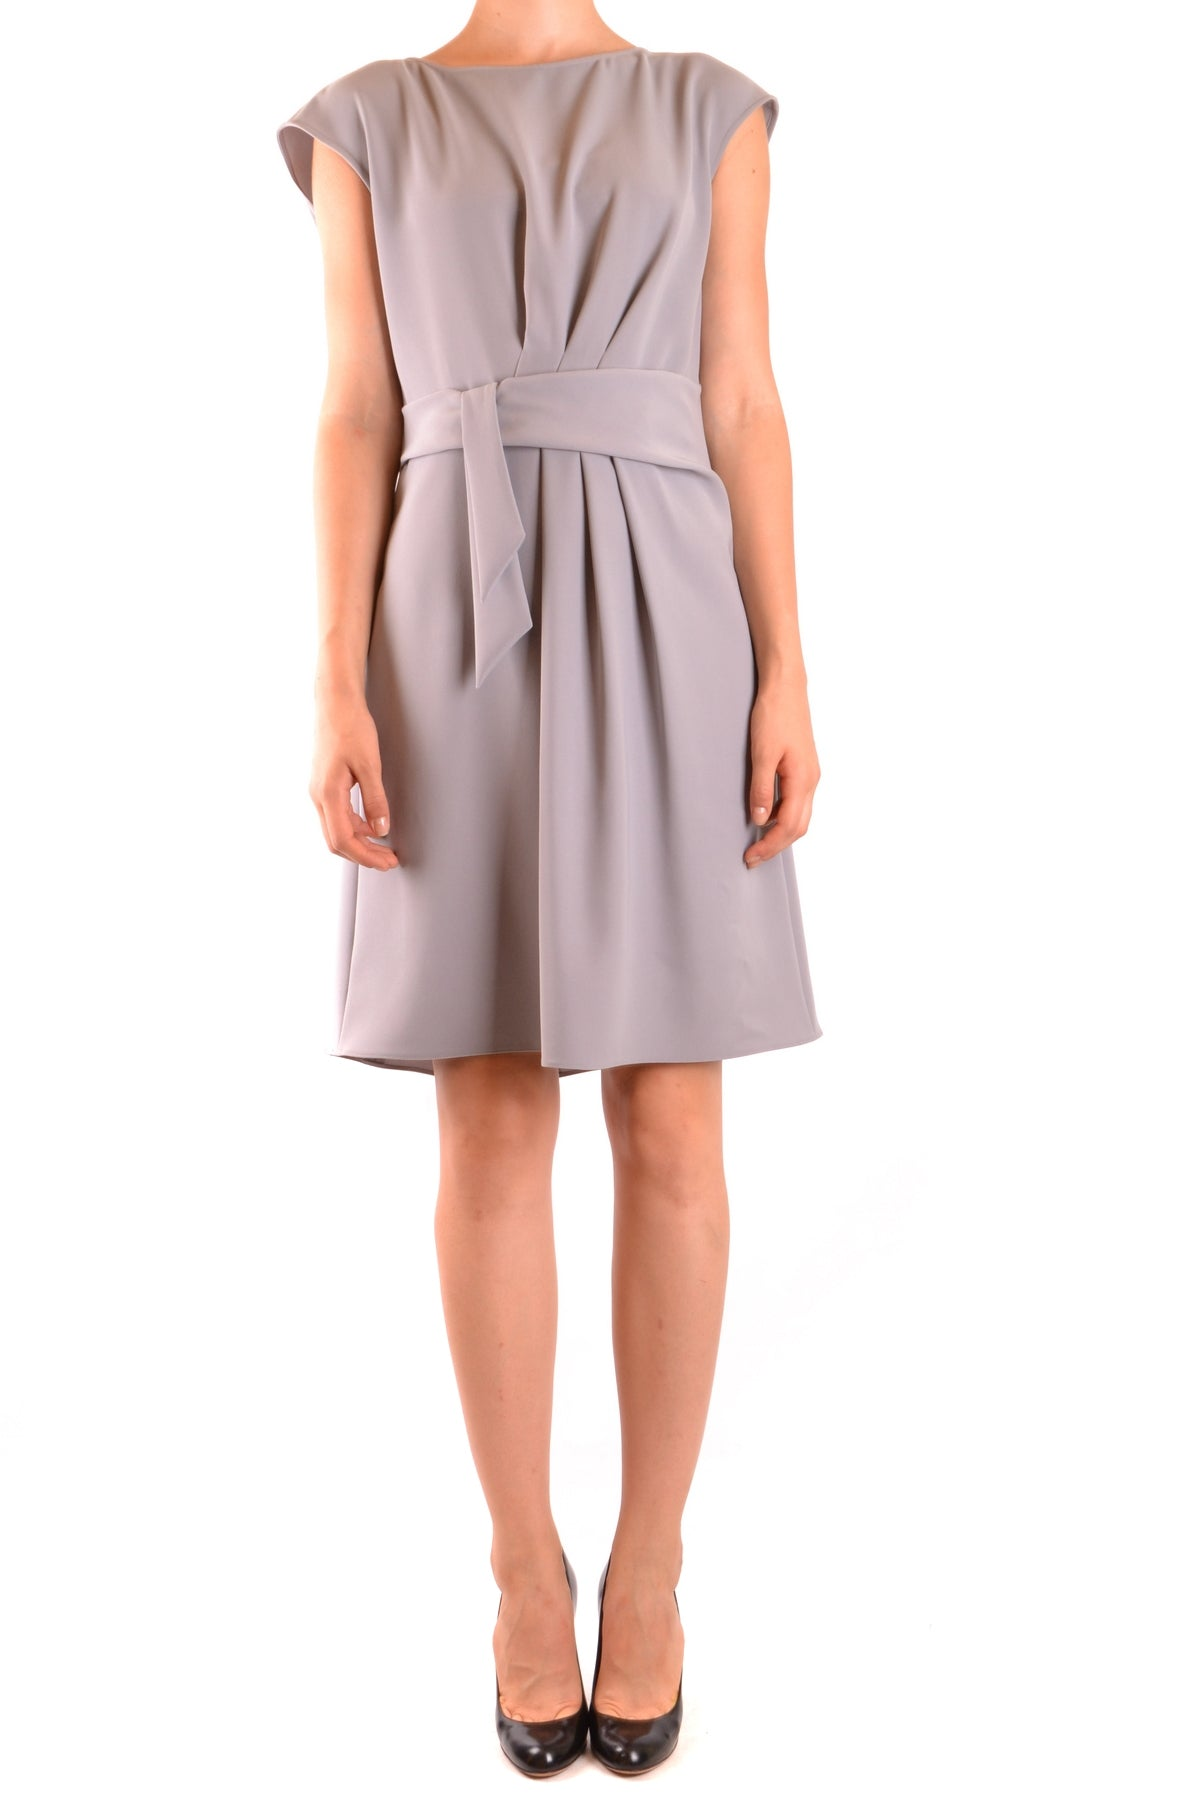 Dress Armani Collezioni-Dress - WOMAN-46-Product Details Season: Spring / SummerTerms: New With LabelMain Color: GrayGender: WomanMade In: ChinaManufacturer Part Number: Vma13T Vm015 628Size: ItYear: 2018Clothing Type: DressComposition: Polyester 100%-Keyomi-Sook